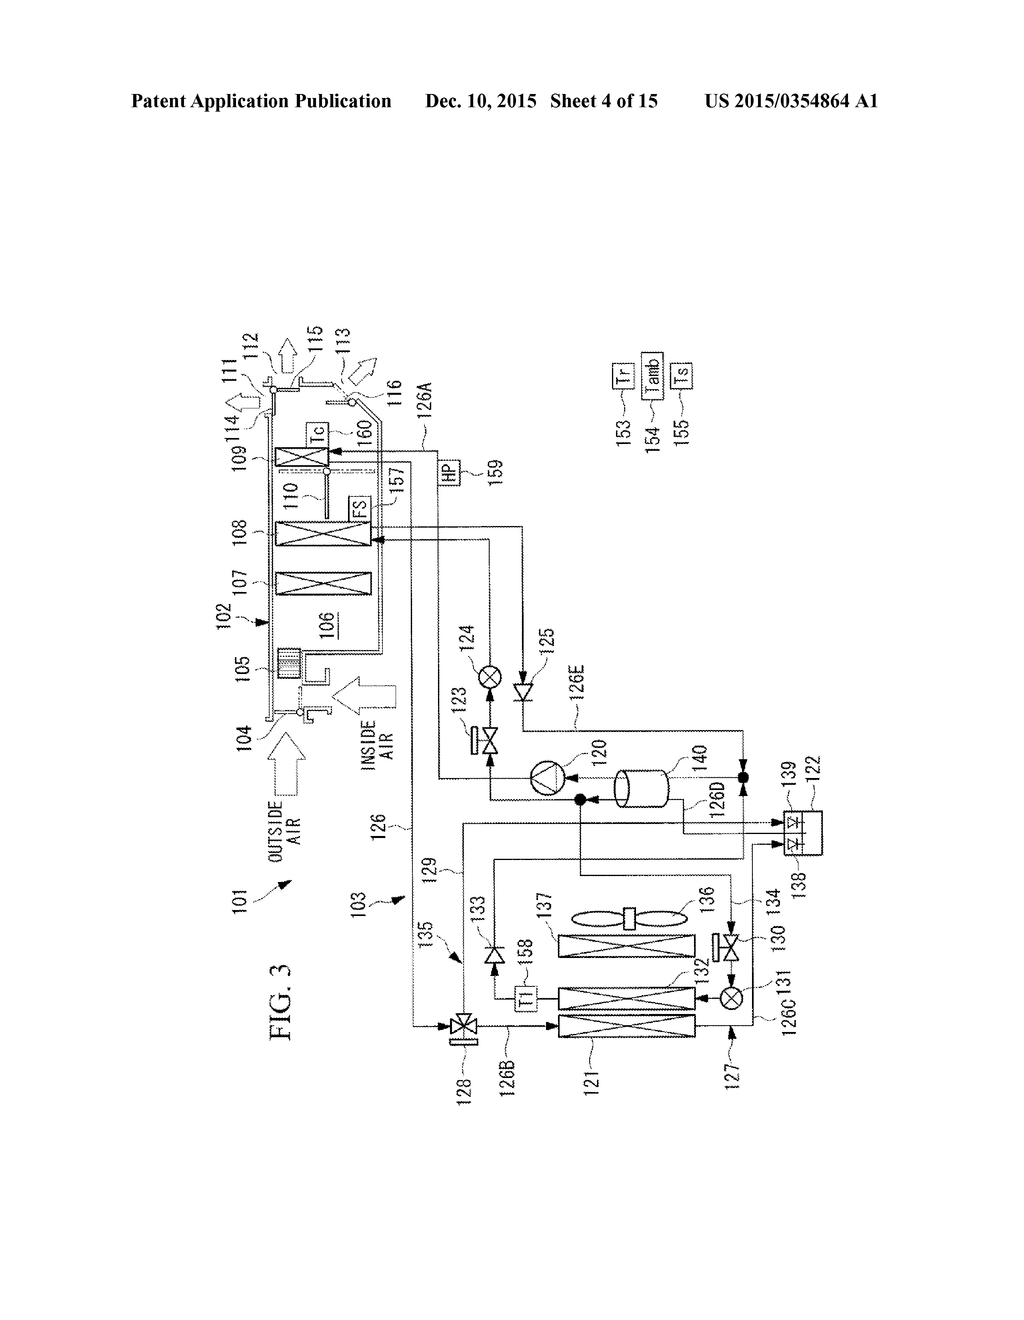 hight resolution of heat pump automotive air conditioner and defrosting method of the heat pump automotive air conditioner diagram schematic and image 05